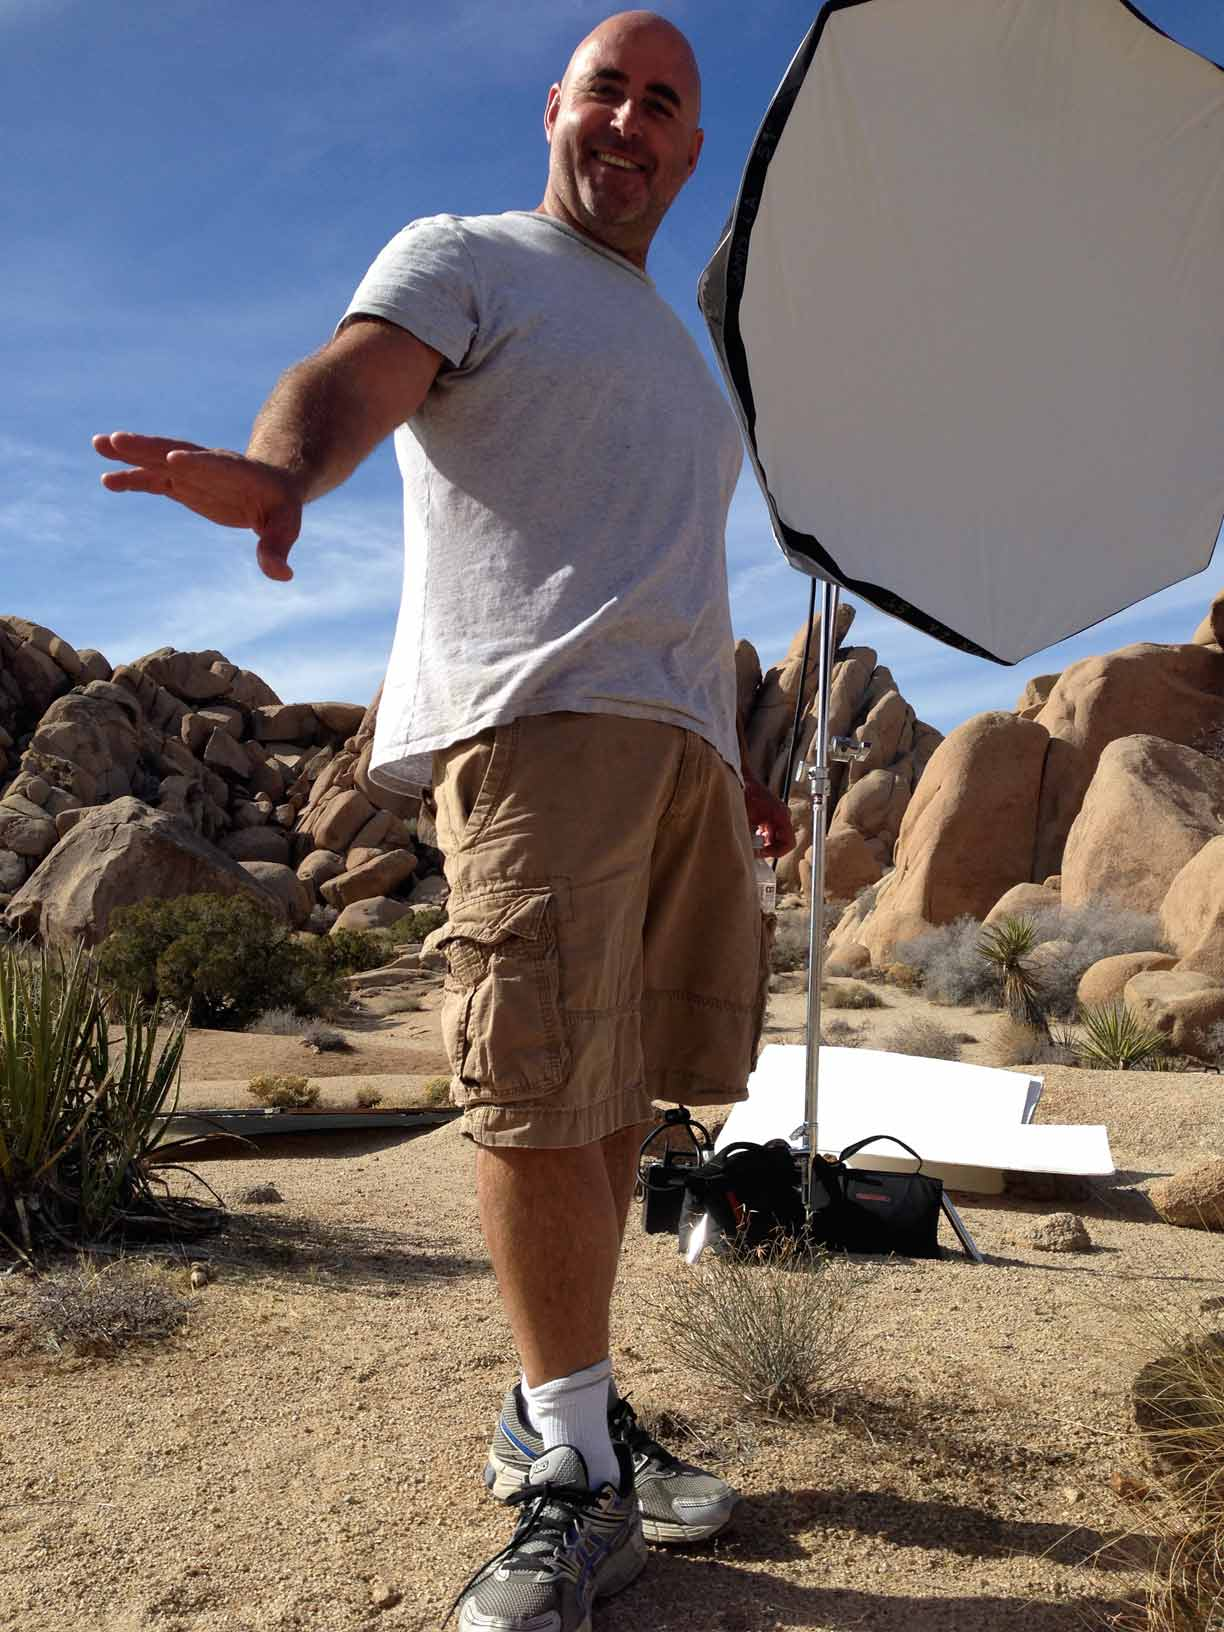 My friend and photographer Geoff Ragatz surfing the desert sand. It was Geoff's idea to come here today.